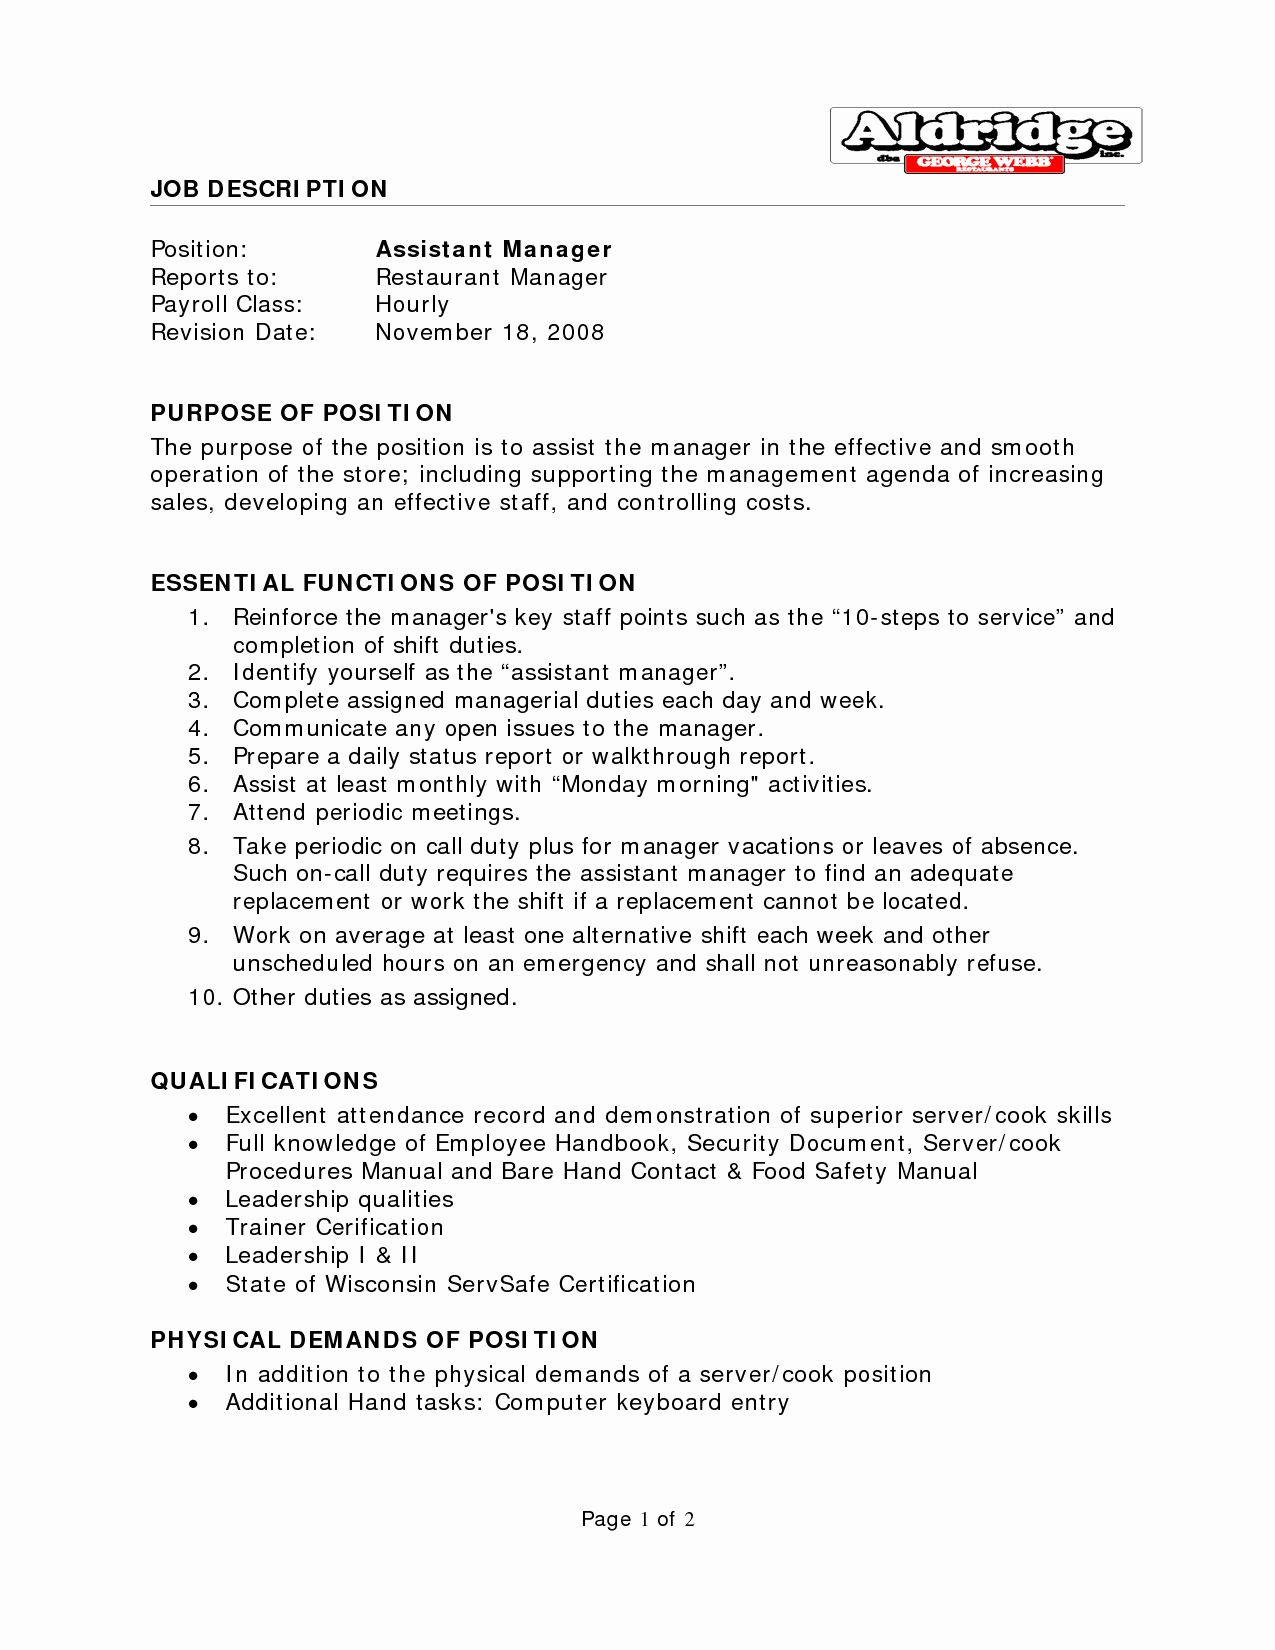 Assistant Manager Resume Description Beautiful Best S Of